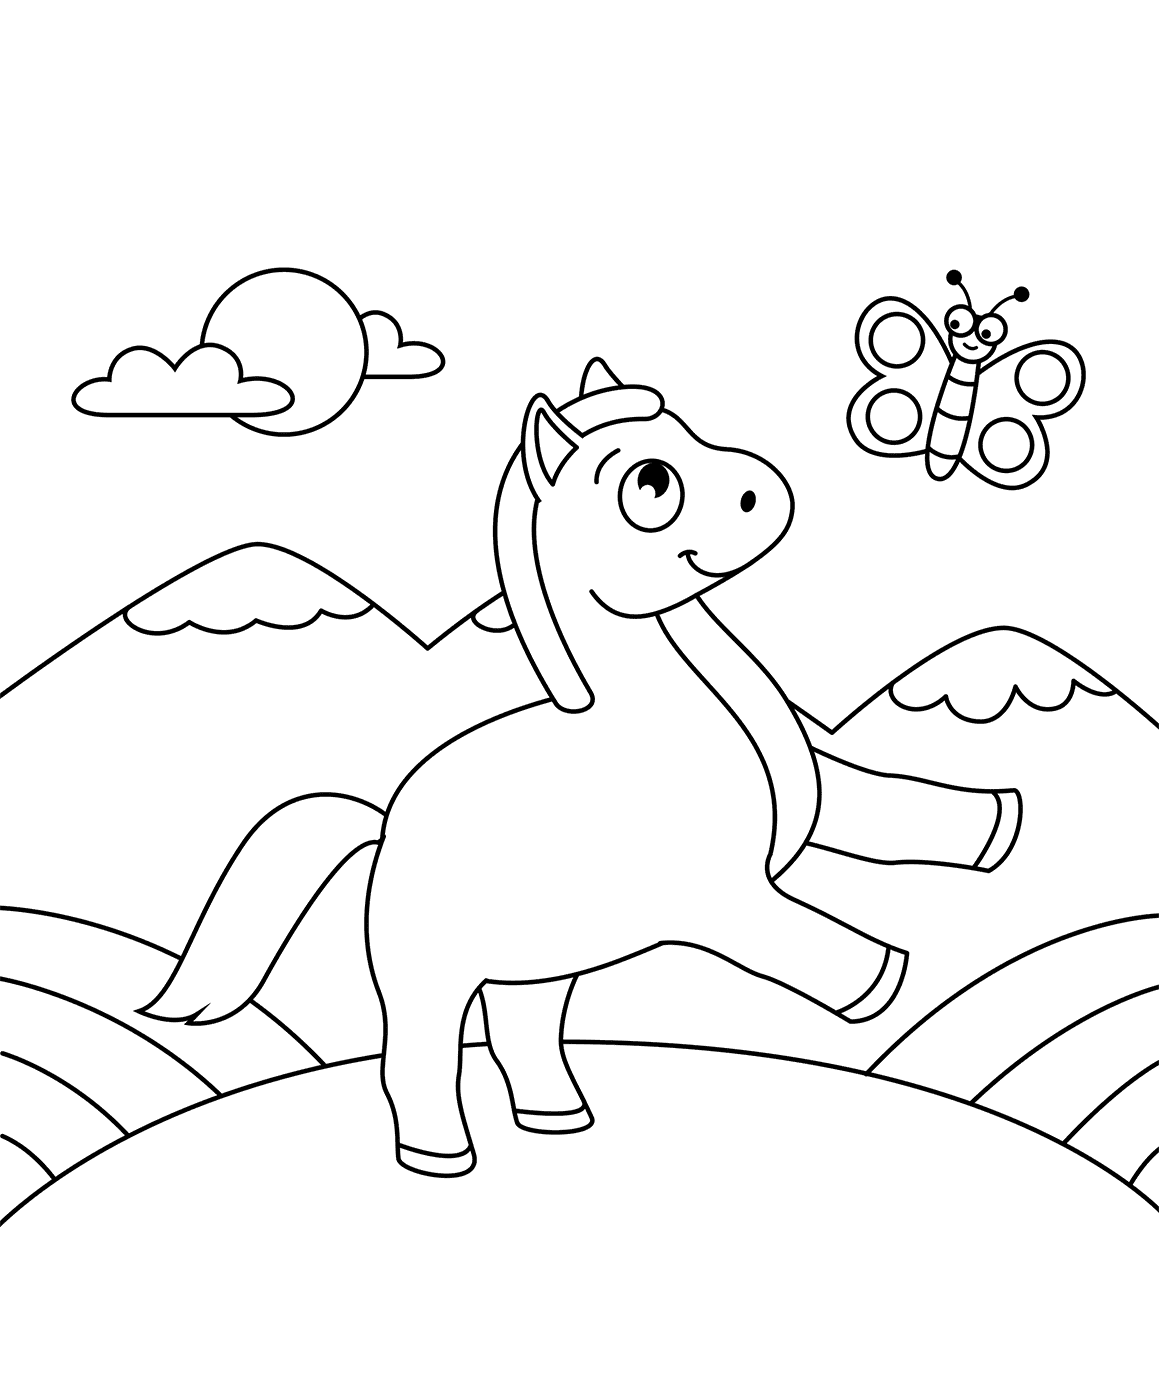 Horse With Butterfly Coloring Page